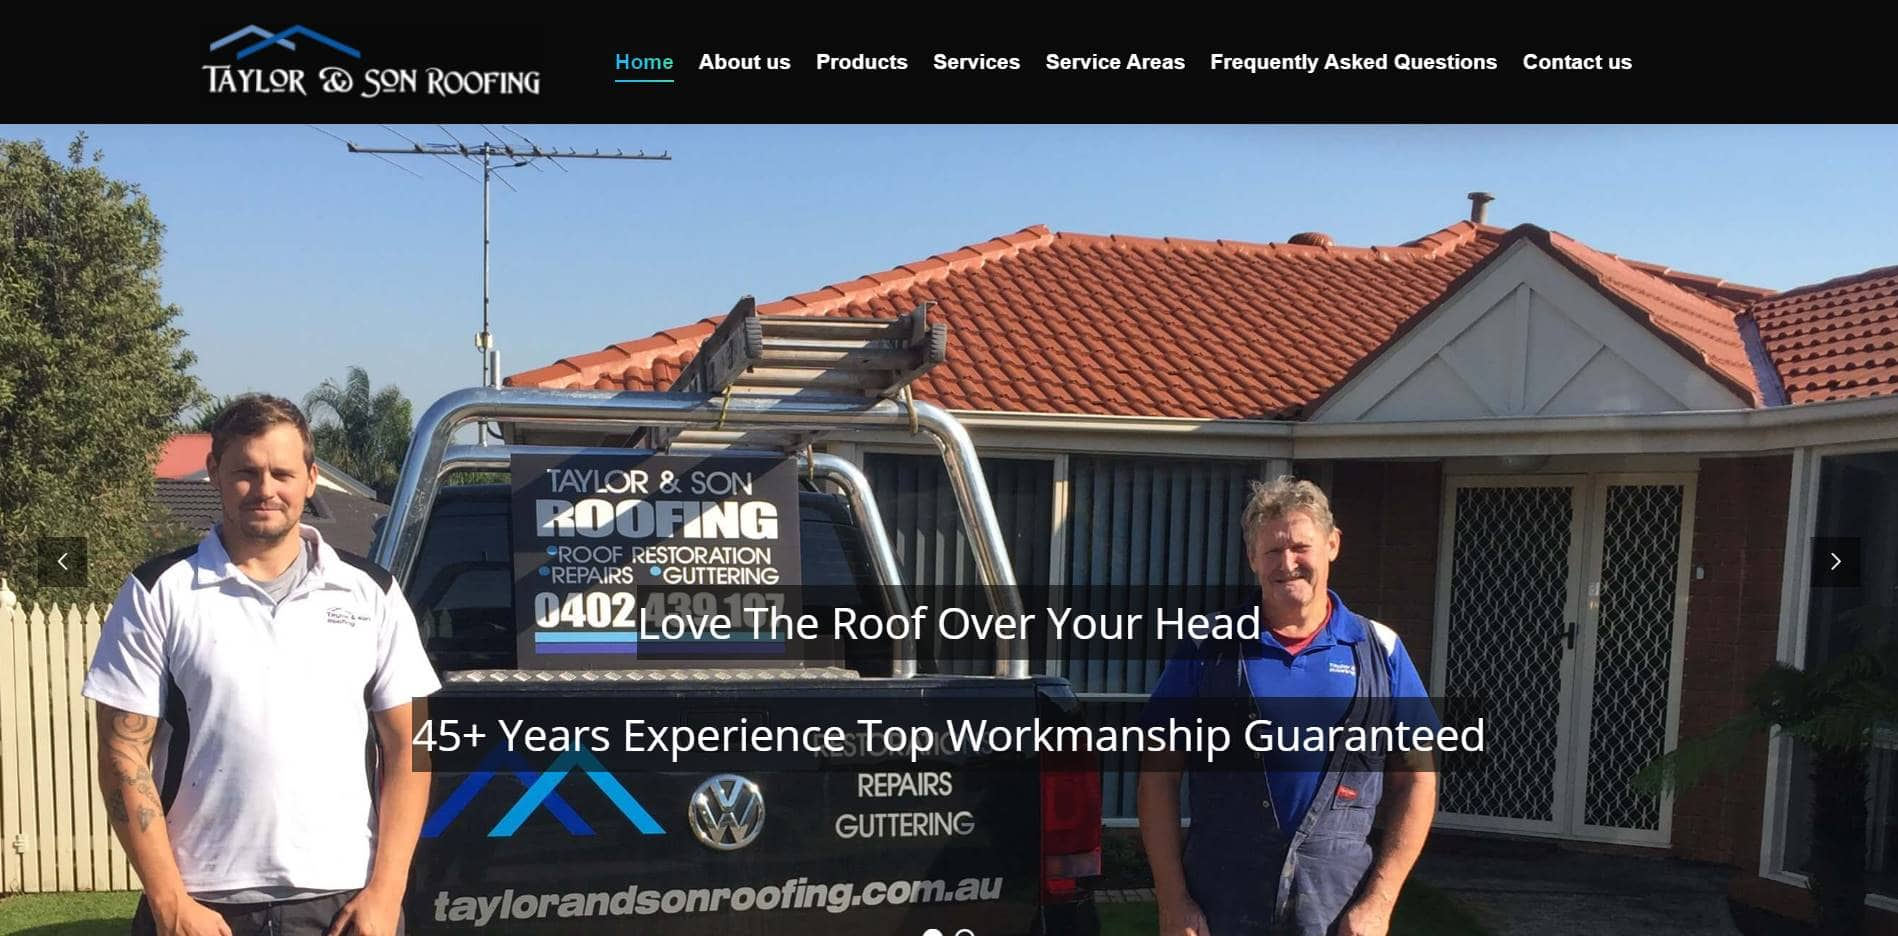 taylor & son roofing